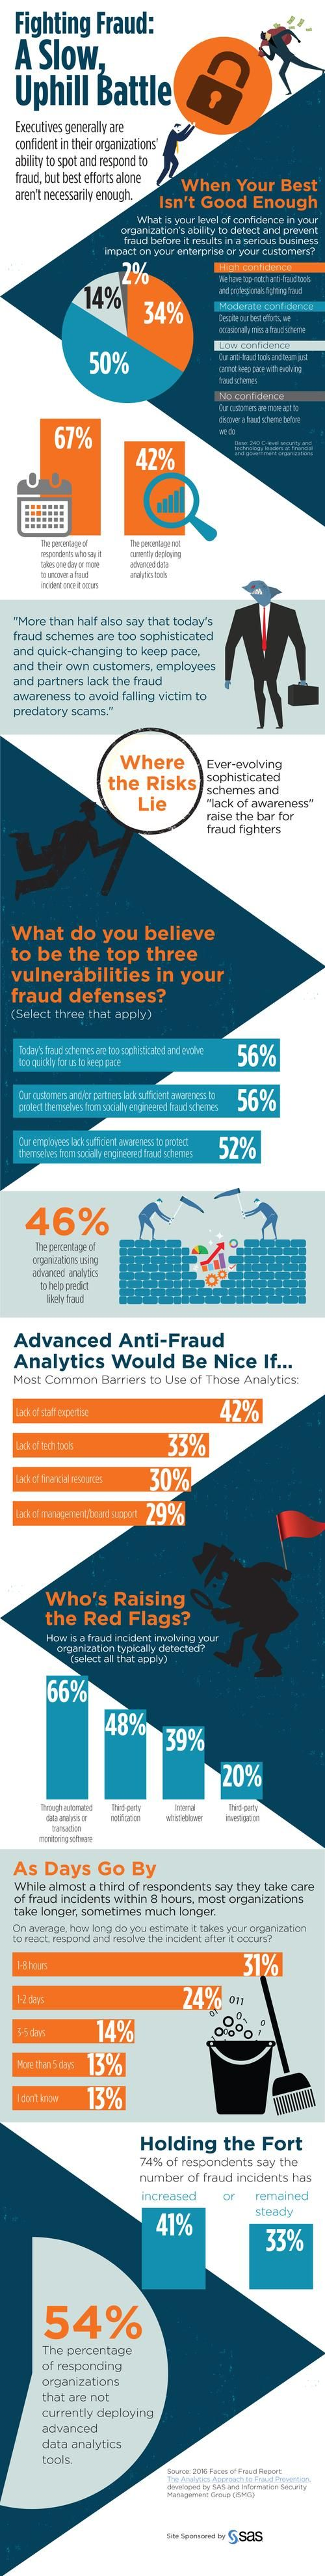 More than half of the organizations surveyed by Information Security Media Group and SAS aren't yet utilizing advanced analytics tools in their anti-fraud efforts.